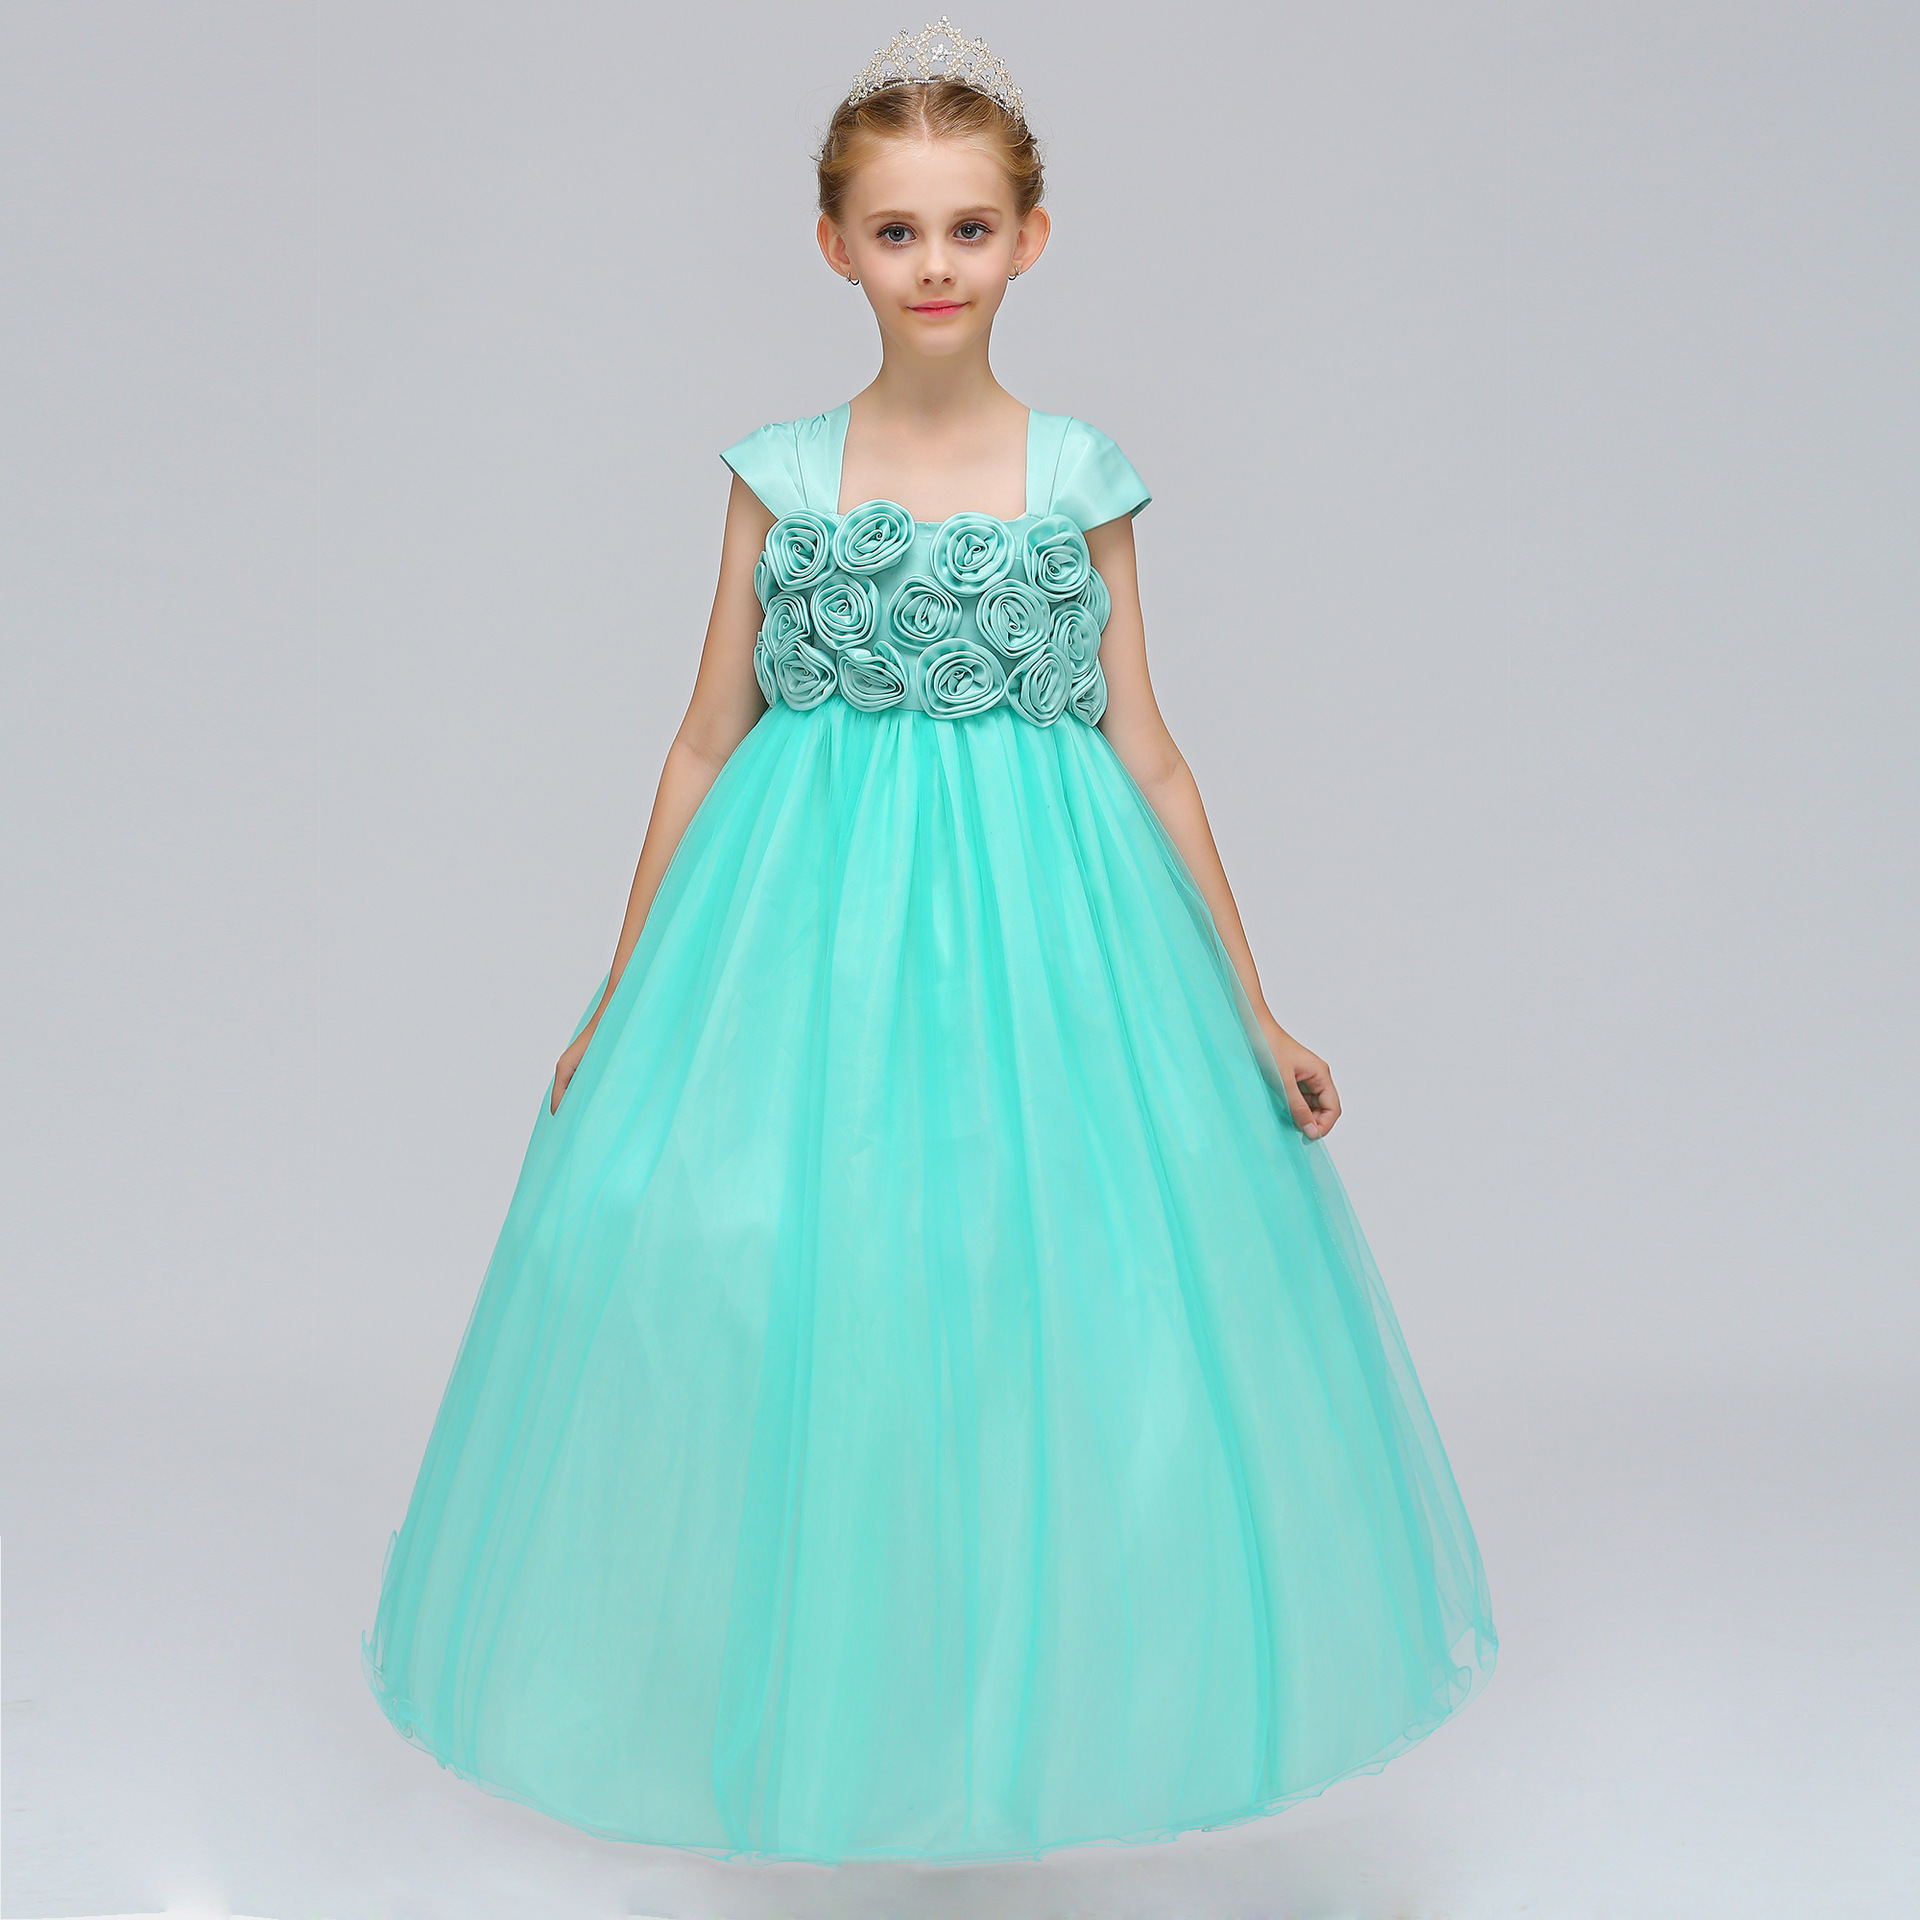 2018 girls wedding party dresses Three dimensional flower long dress ...